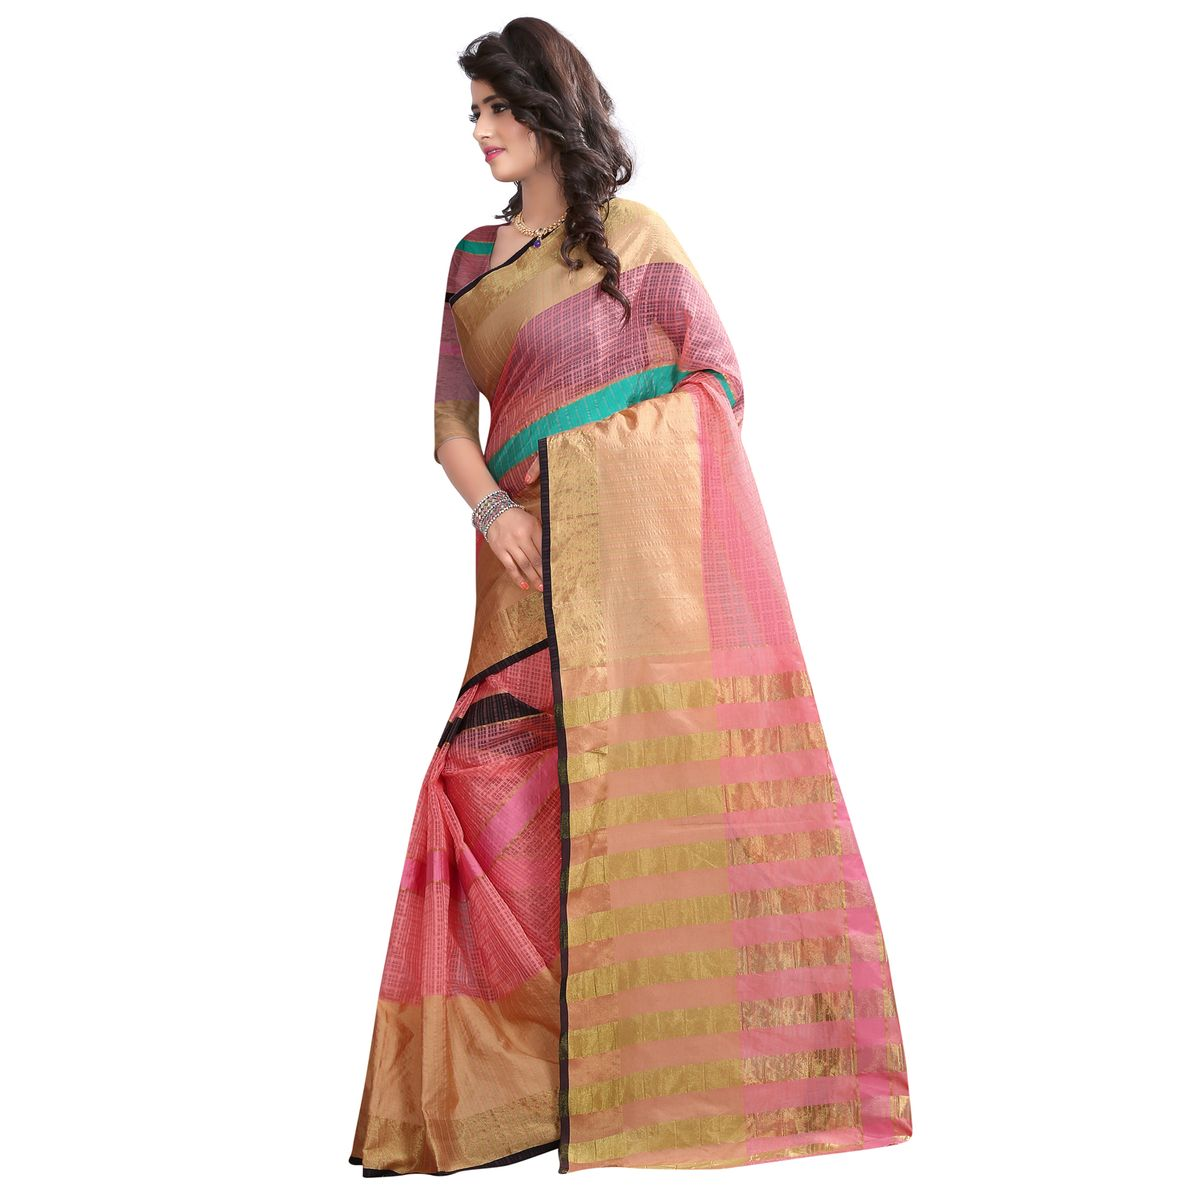 B4Best Creation Embellished Net Pink Color Saree for Women with Blouse Piece077